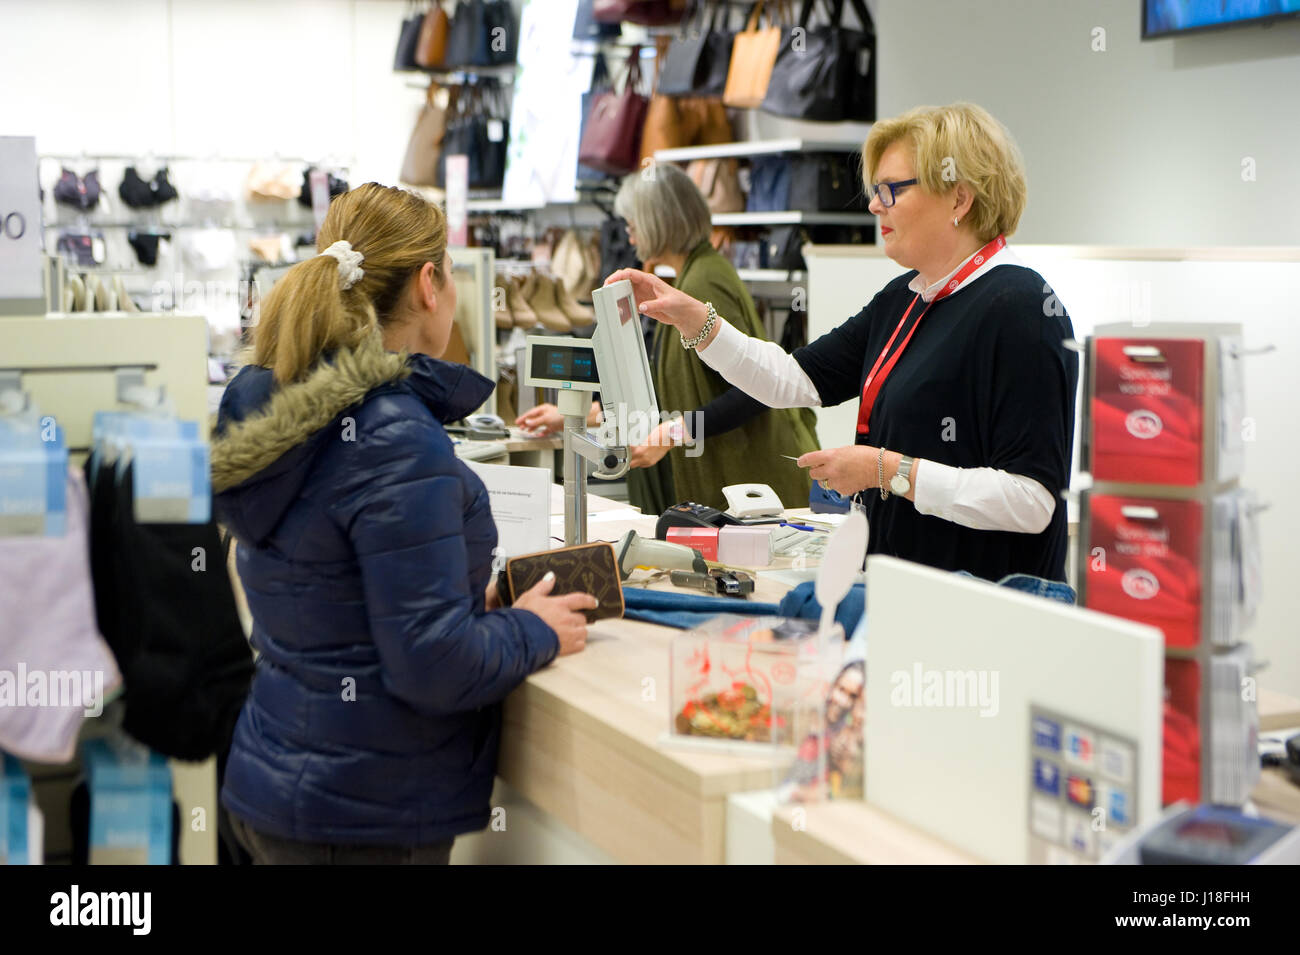 ENSCHEDE, THE NETHERLANDS - APRIL 13, 2017: A woman is paying at a cashier after she bought clothes in clothes store - Stock Image